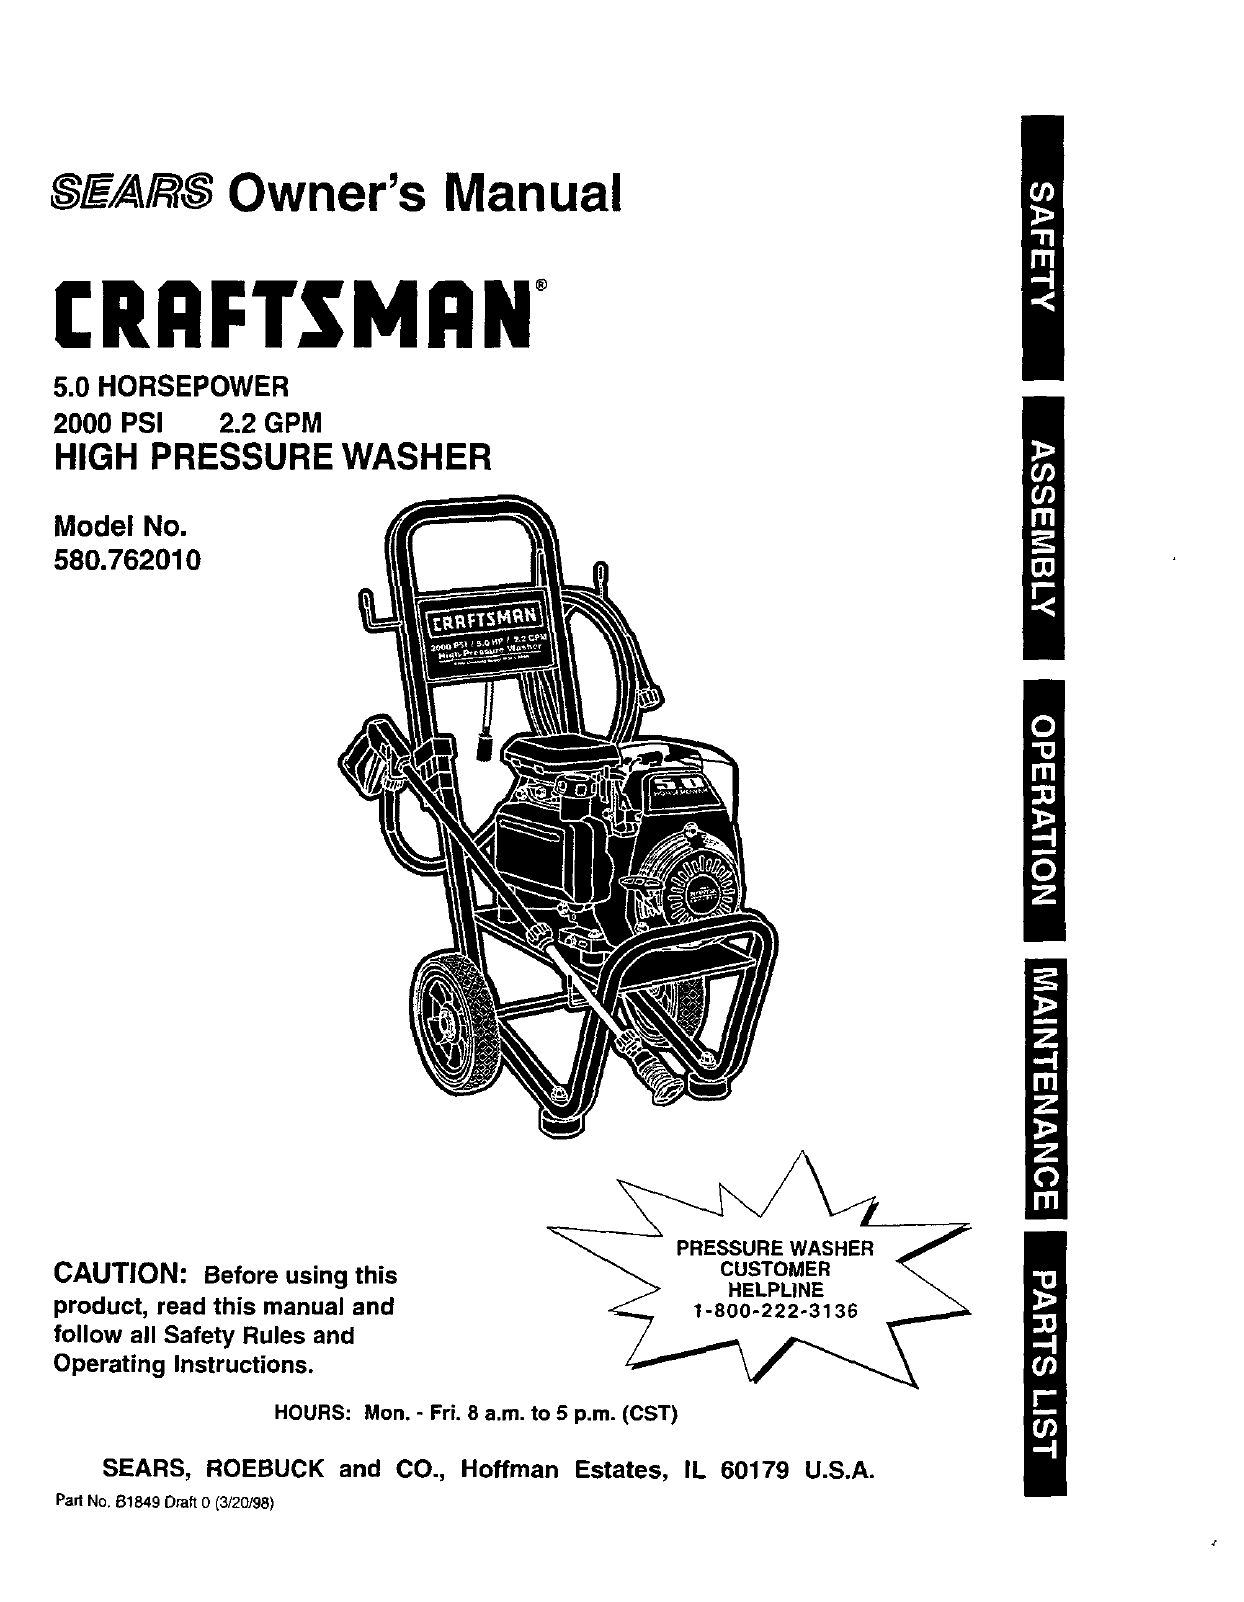 International Harvester Truck Wiring Diagram further White Hydro Transmission Parts likewise Cub Cadet 38 Mower Deck Belt Diagram furthermore Oil Pump Engine Diagram as well Huskee Lawn Tractor Steering Parts. on cub cadet tractors manuals